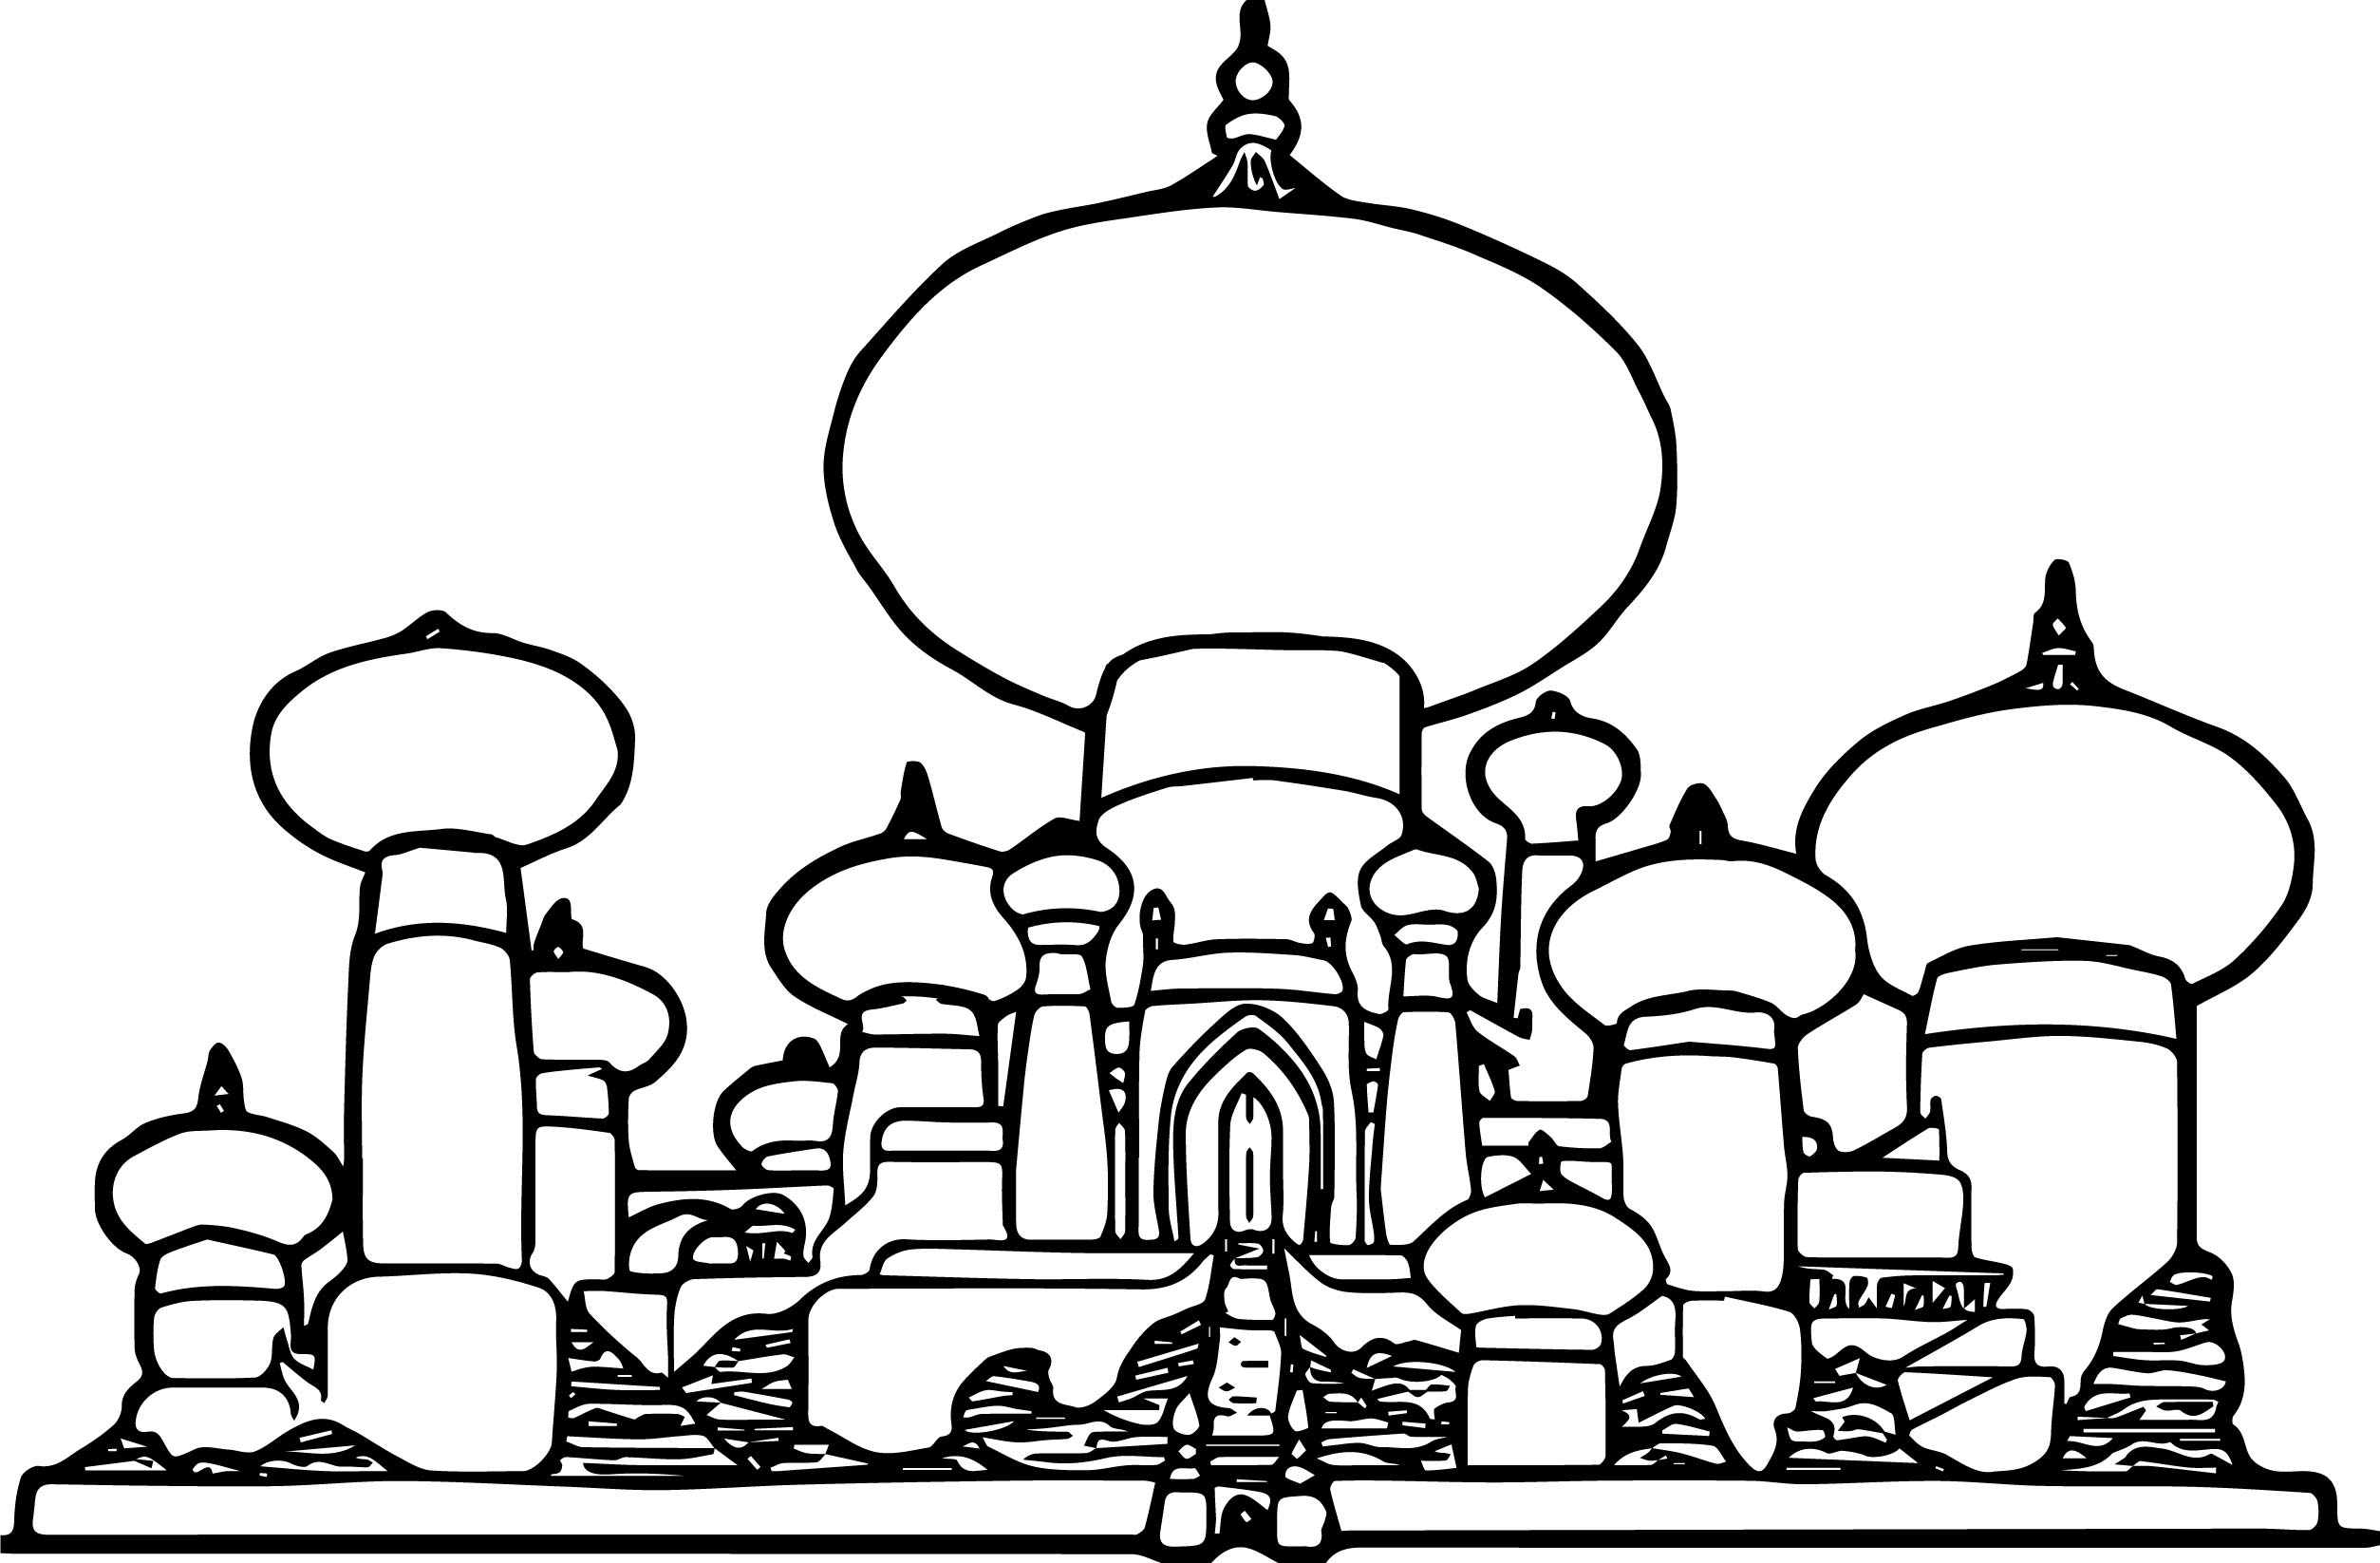 aladdin coloring pages - disney graphics aladdin castle coloring page